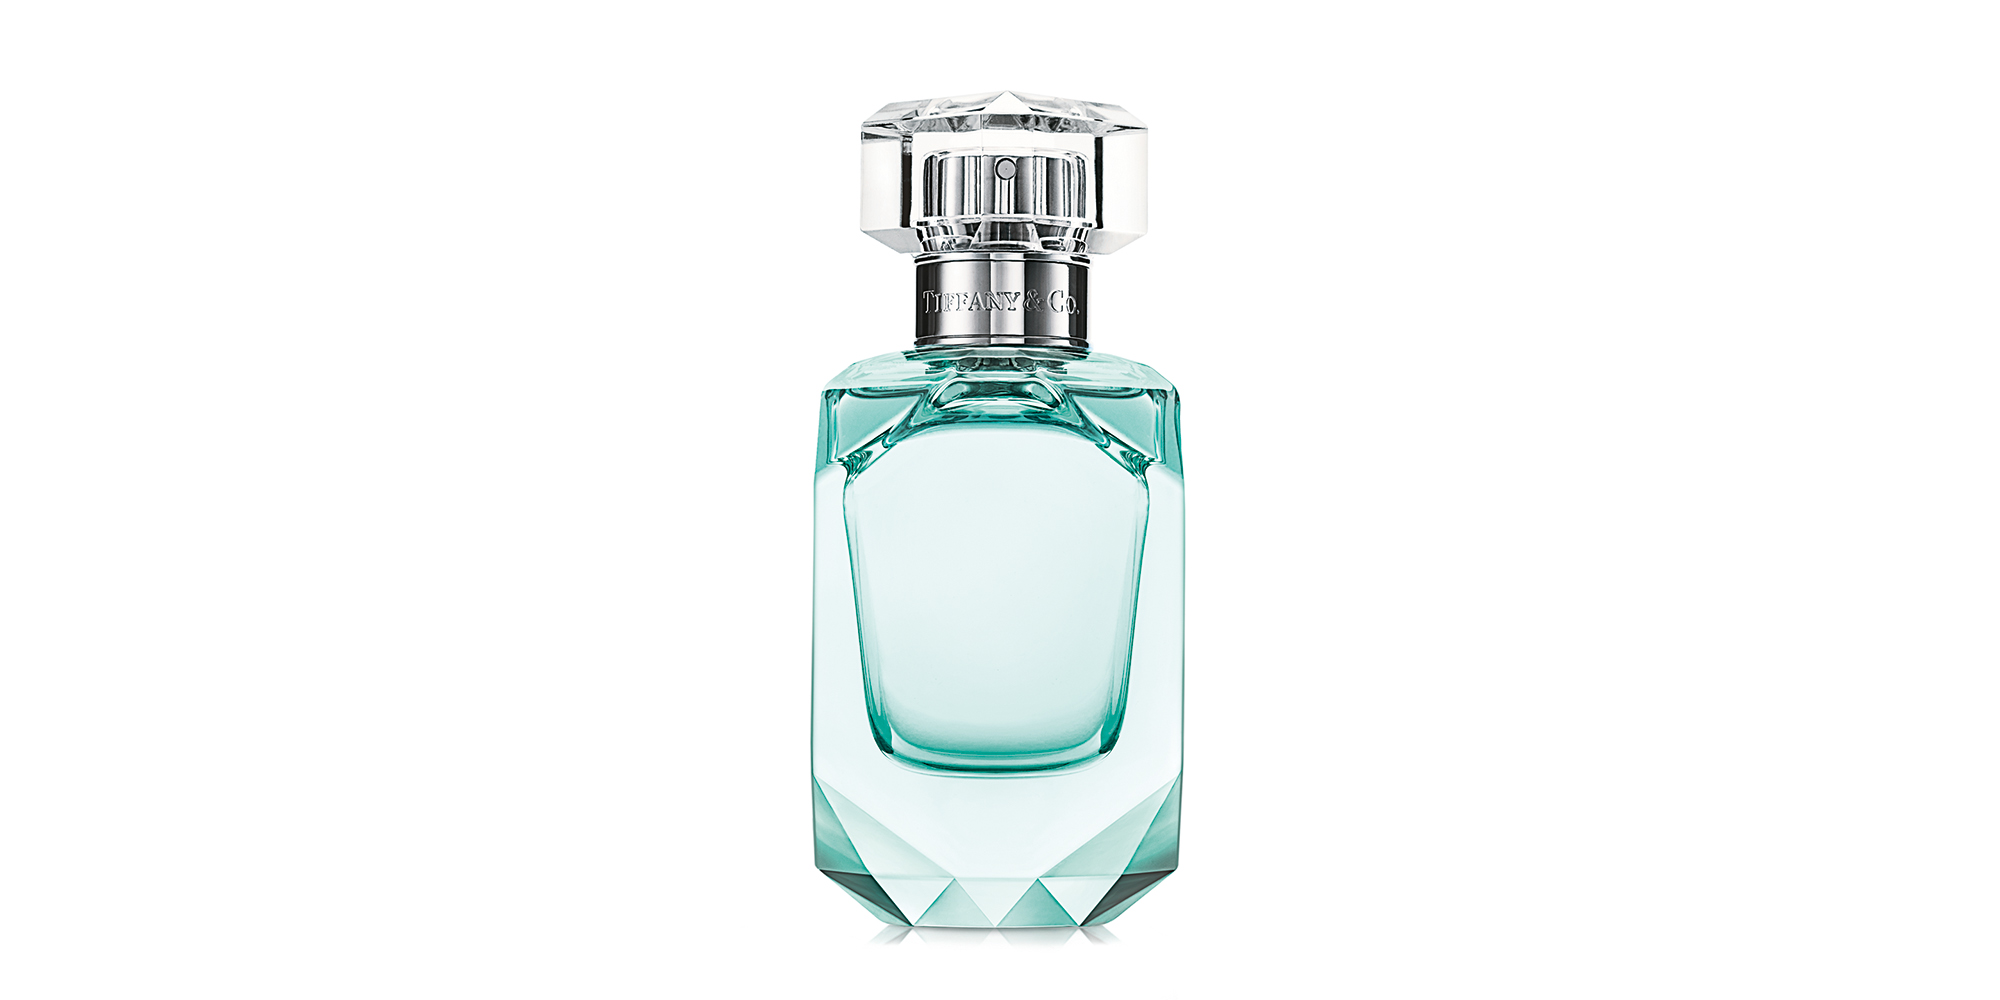 Intense_50ml_EDP_Bottle_FOGRA